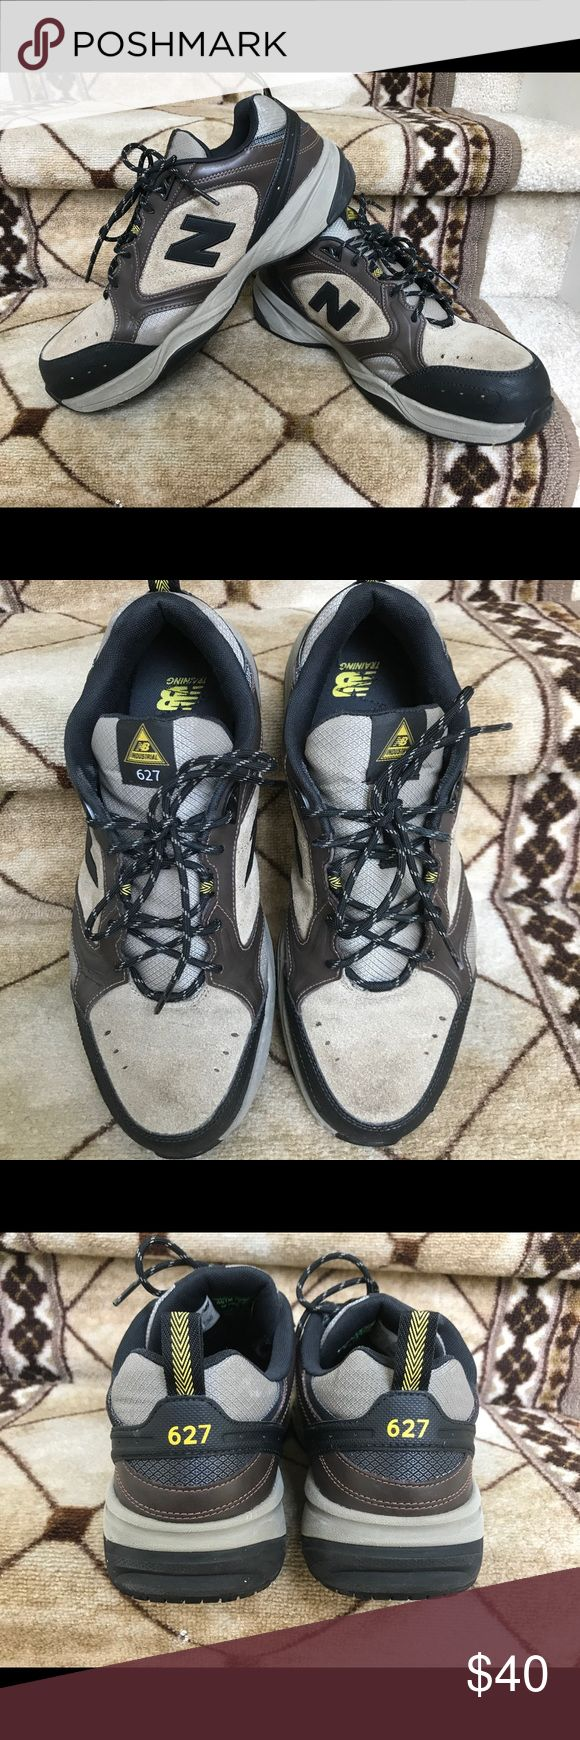 New Balance Steel Toe Shoes (Size-12) Shoes in good condition. New Balance Shoes